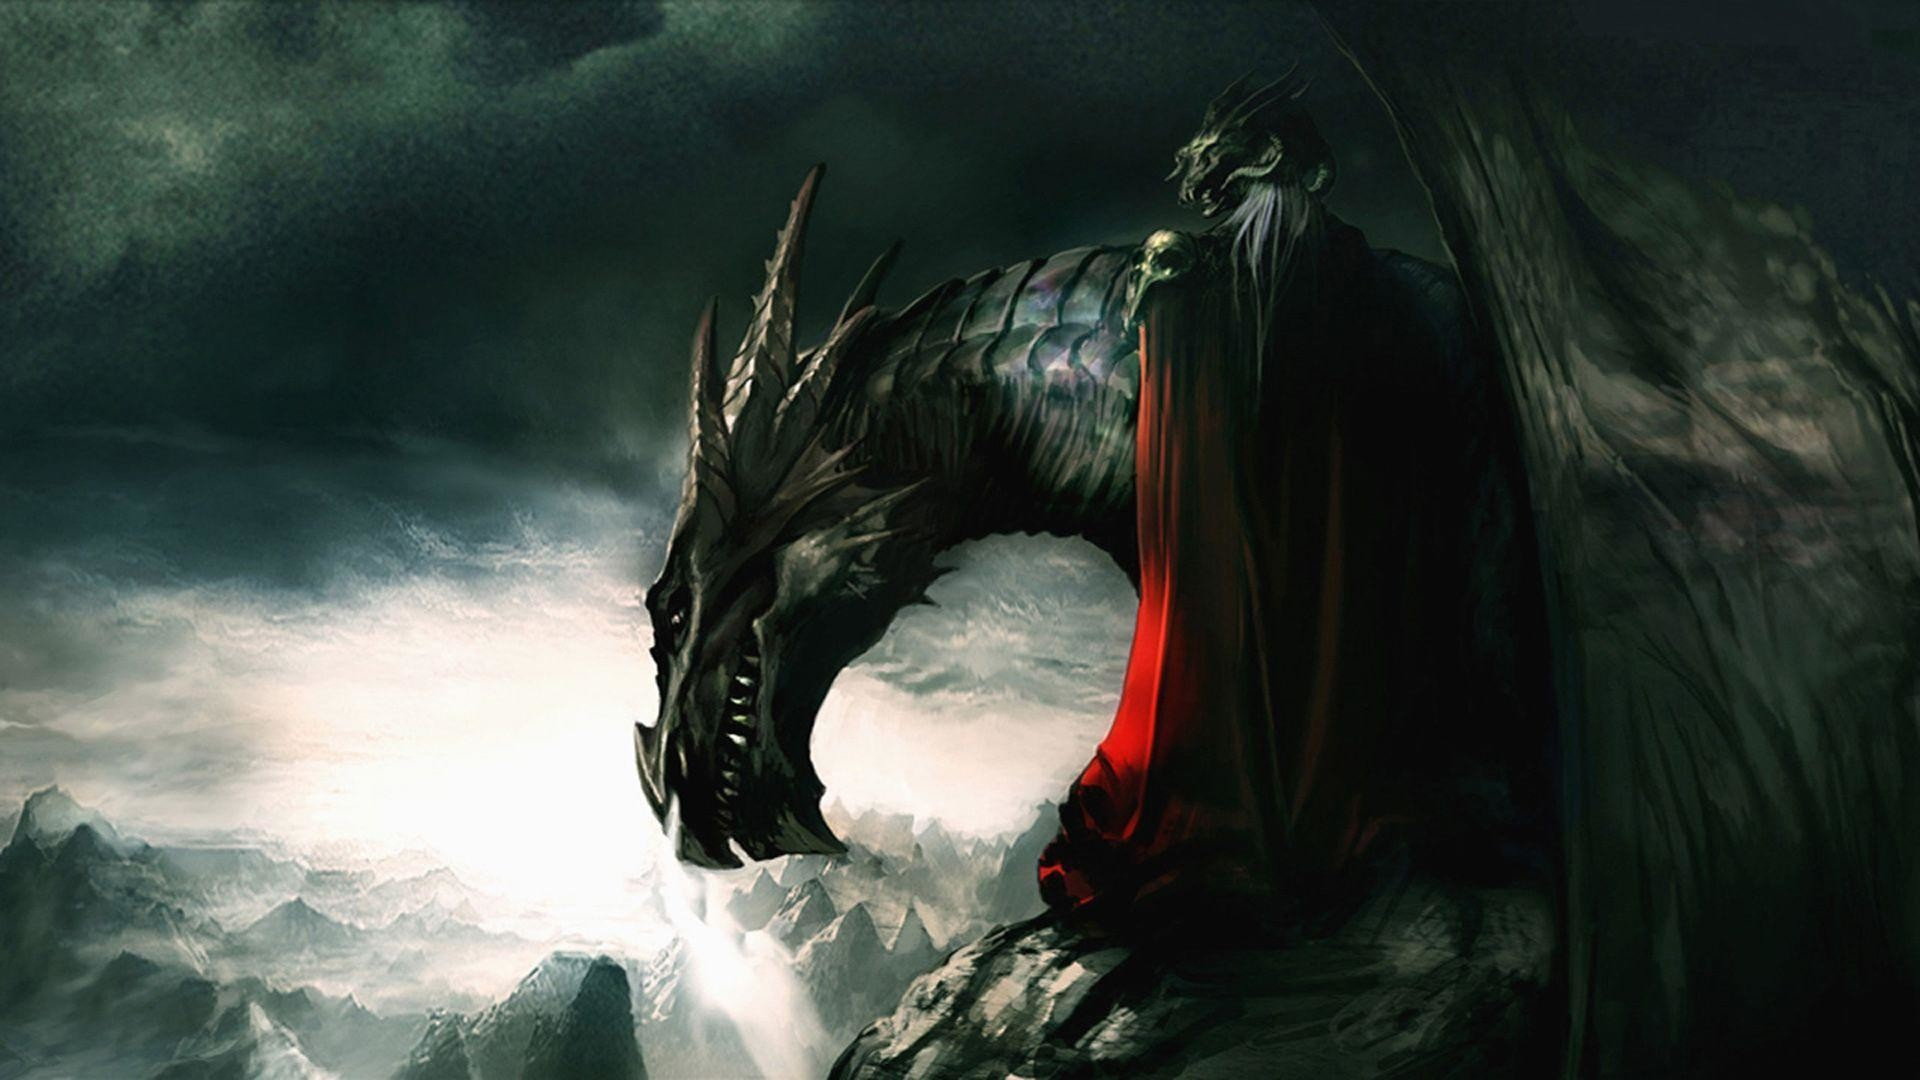 1920x1080 Wallpapers For > Dragon Wallpapers 3d Hd